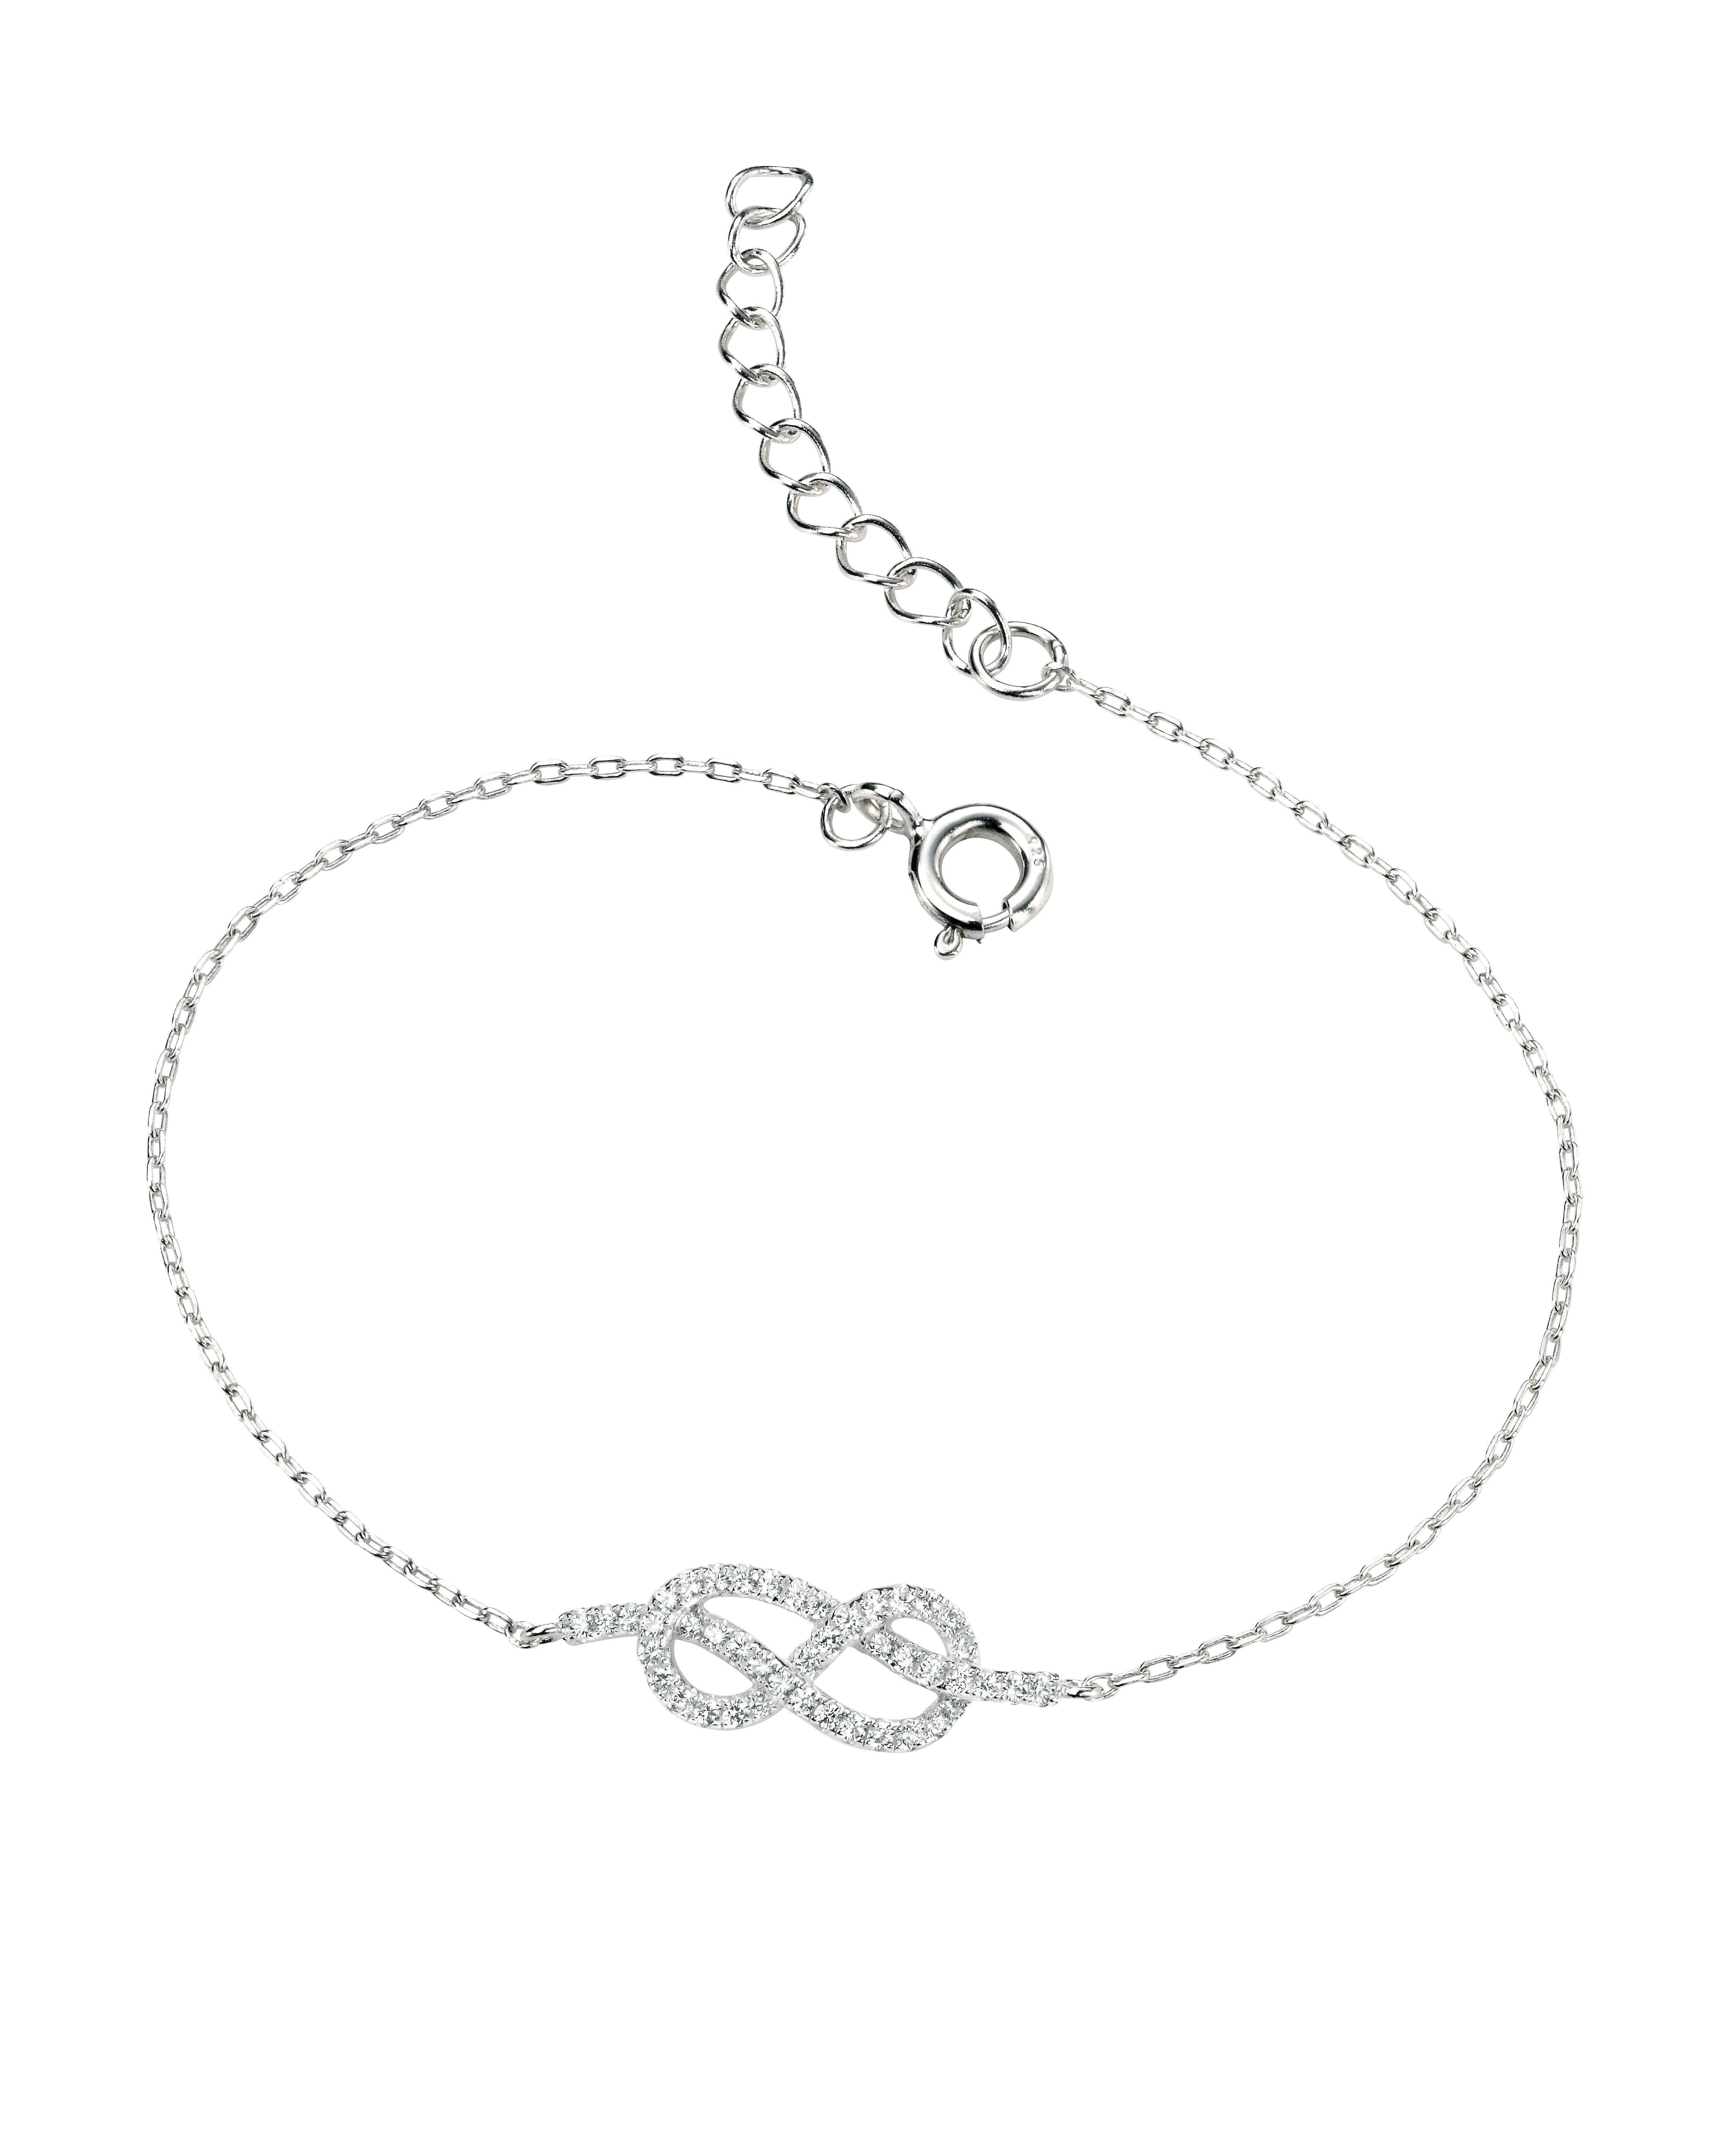 Clear Cz Infinity Bracelet 17+3Cm Throughout Recent Sparkling Infinity Locket Element Necklaces (View 5 of 25)